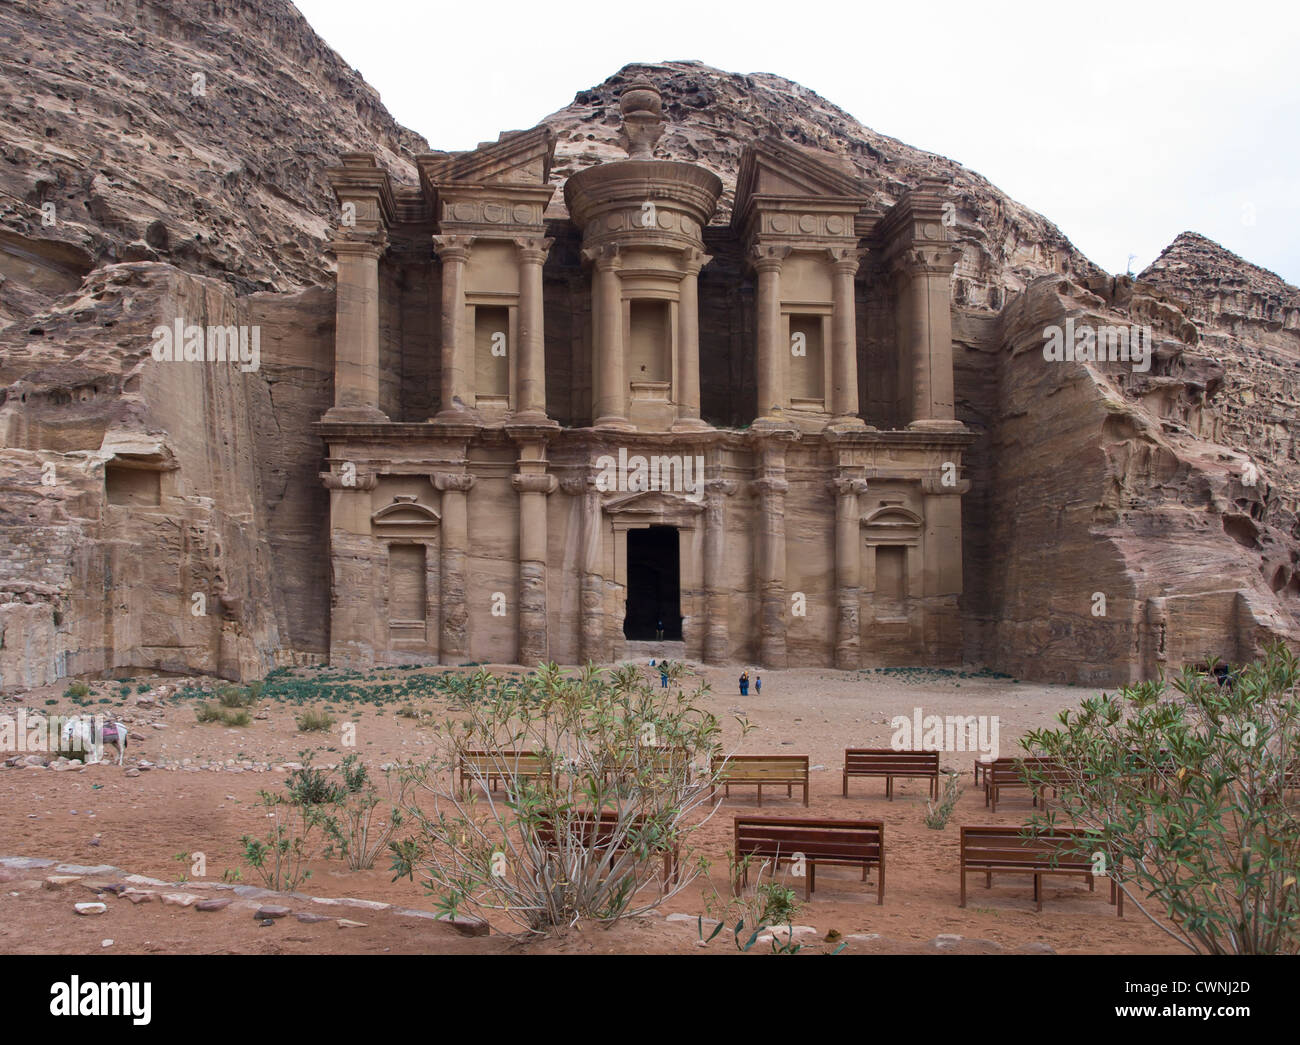 Petra historical and archaeological site in Jordan, here the Ad-Deir or monastry carved into the rock face - Stock Image